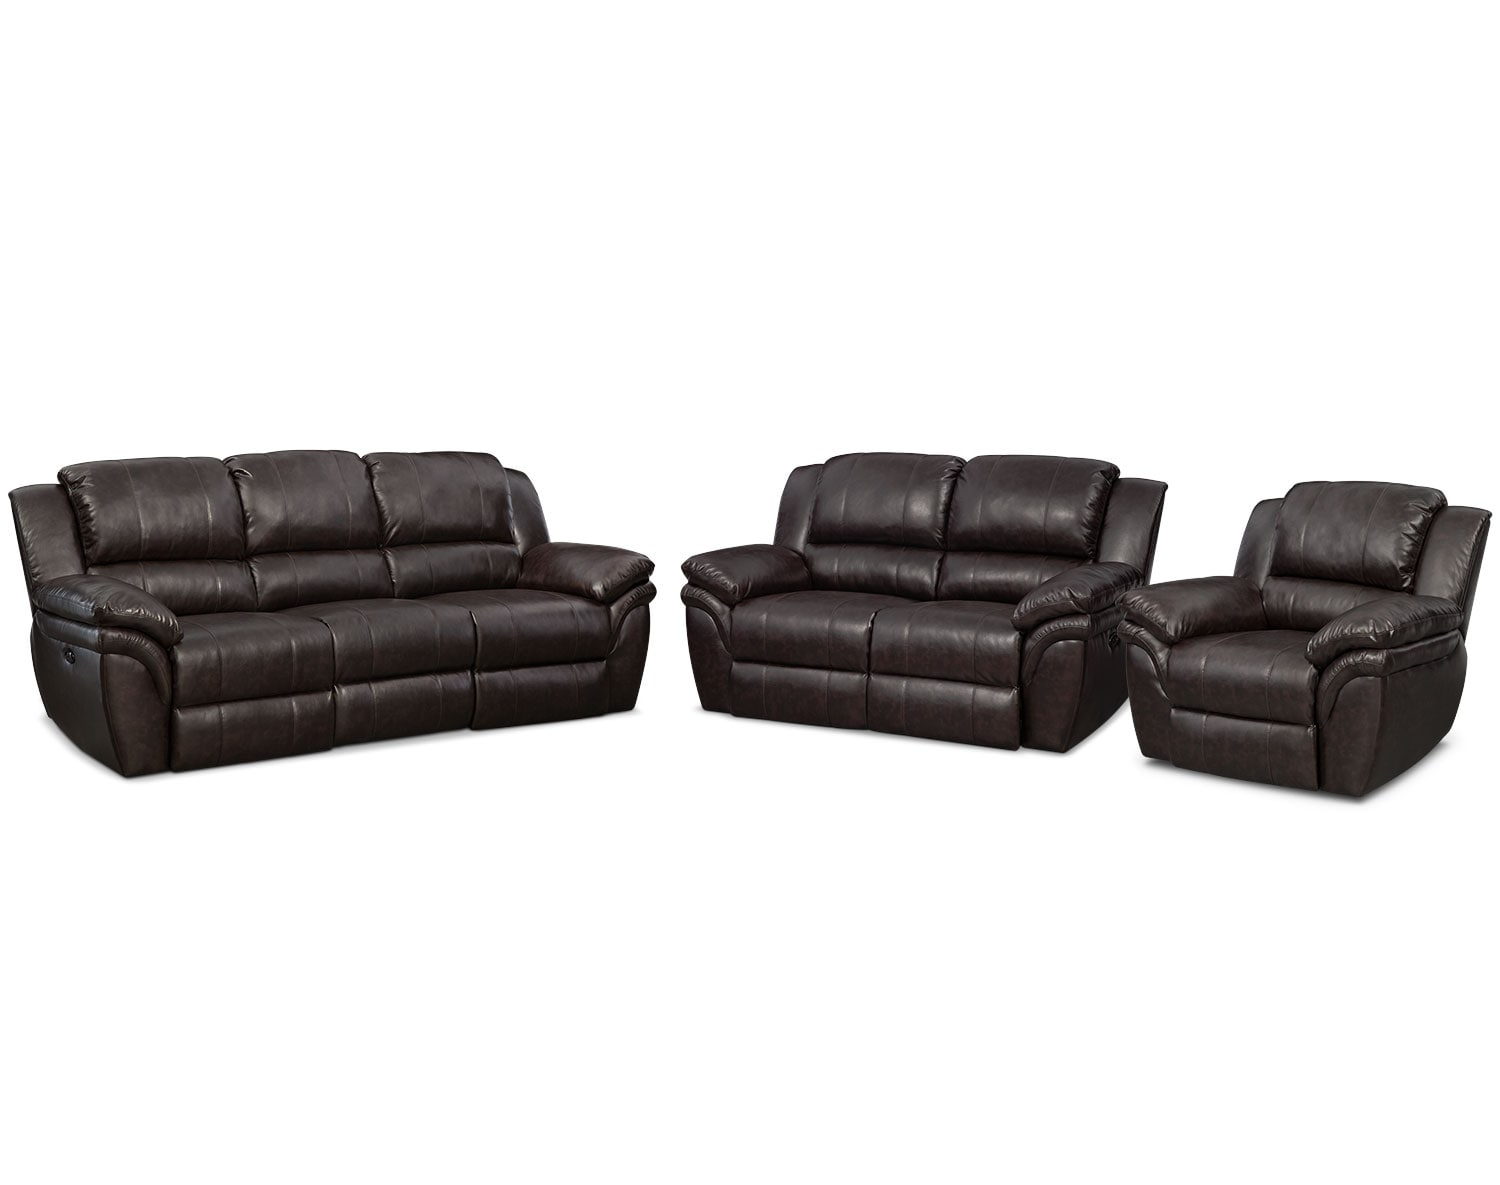 The Aldo Power Reclining Living Room Collection- Brown